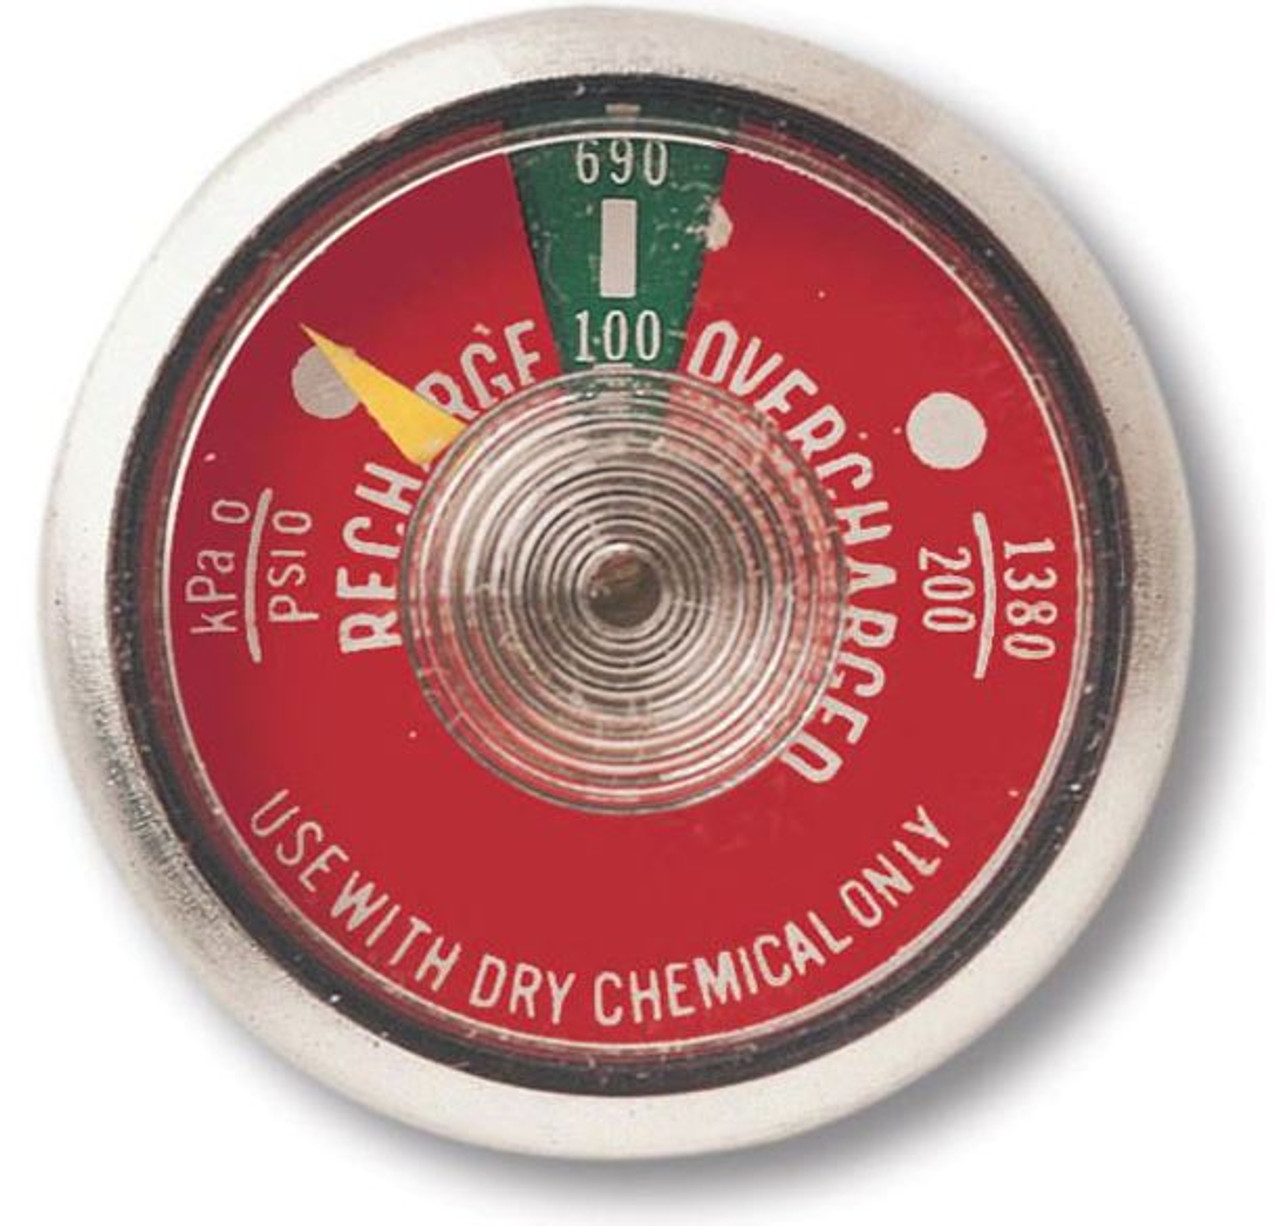 G195 - 195 lb Dry Chemical Fire Extinguisher Gauge